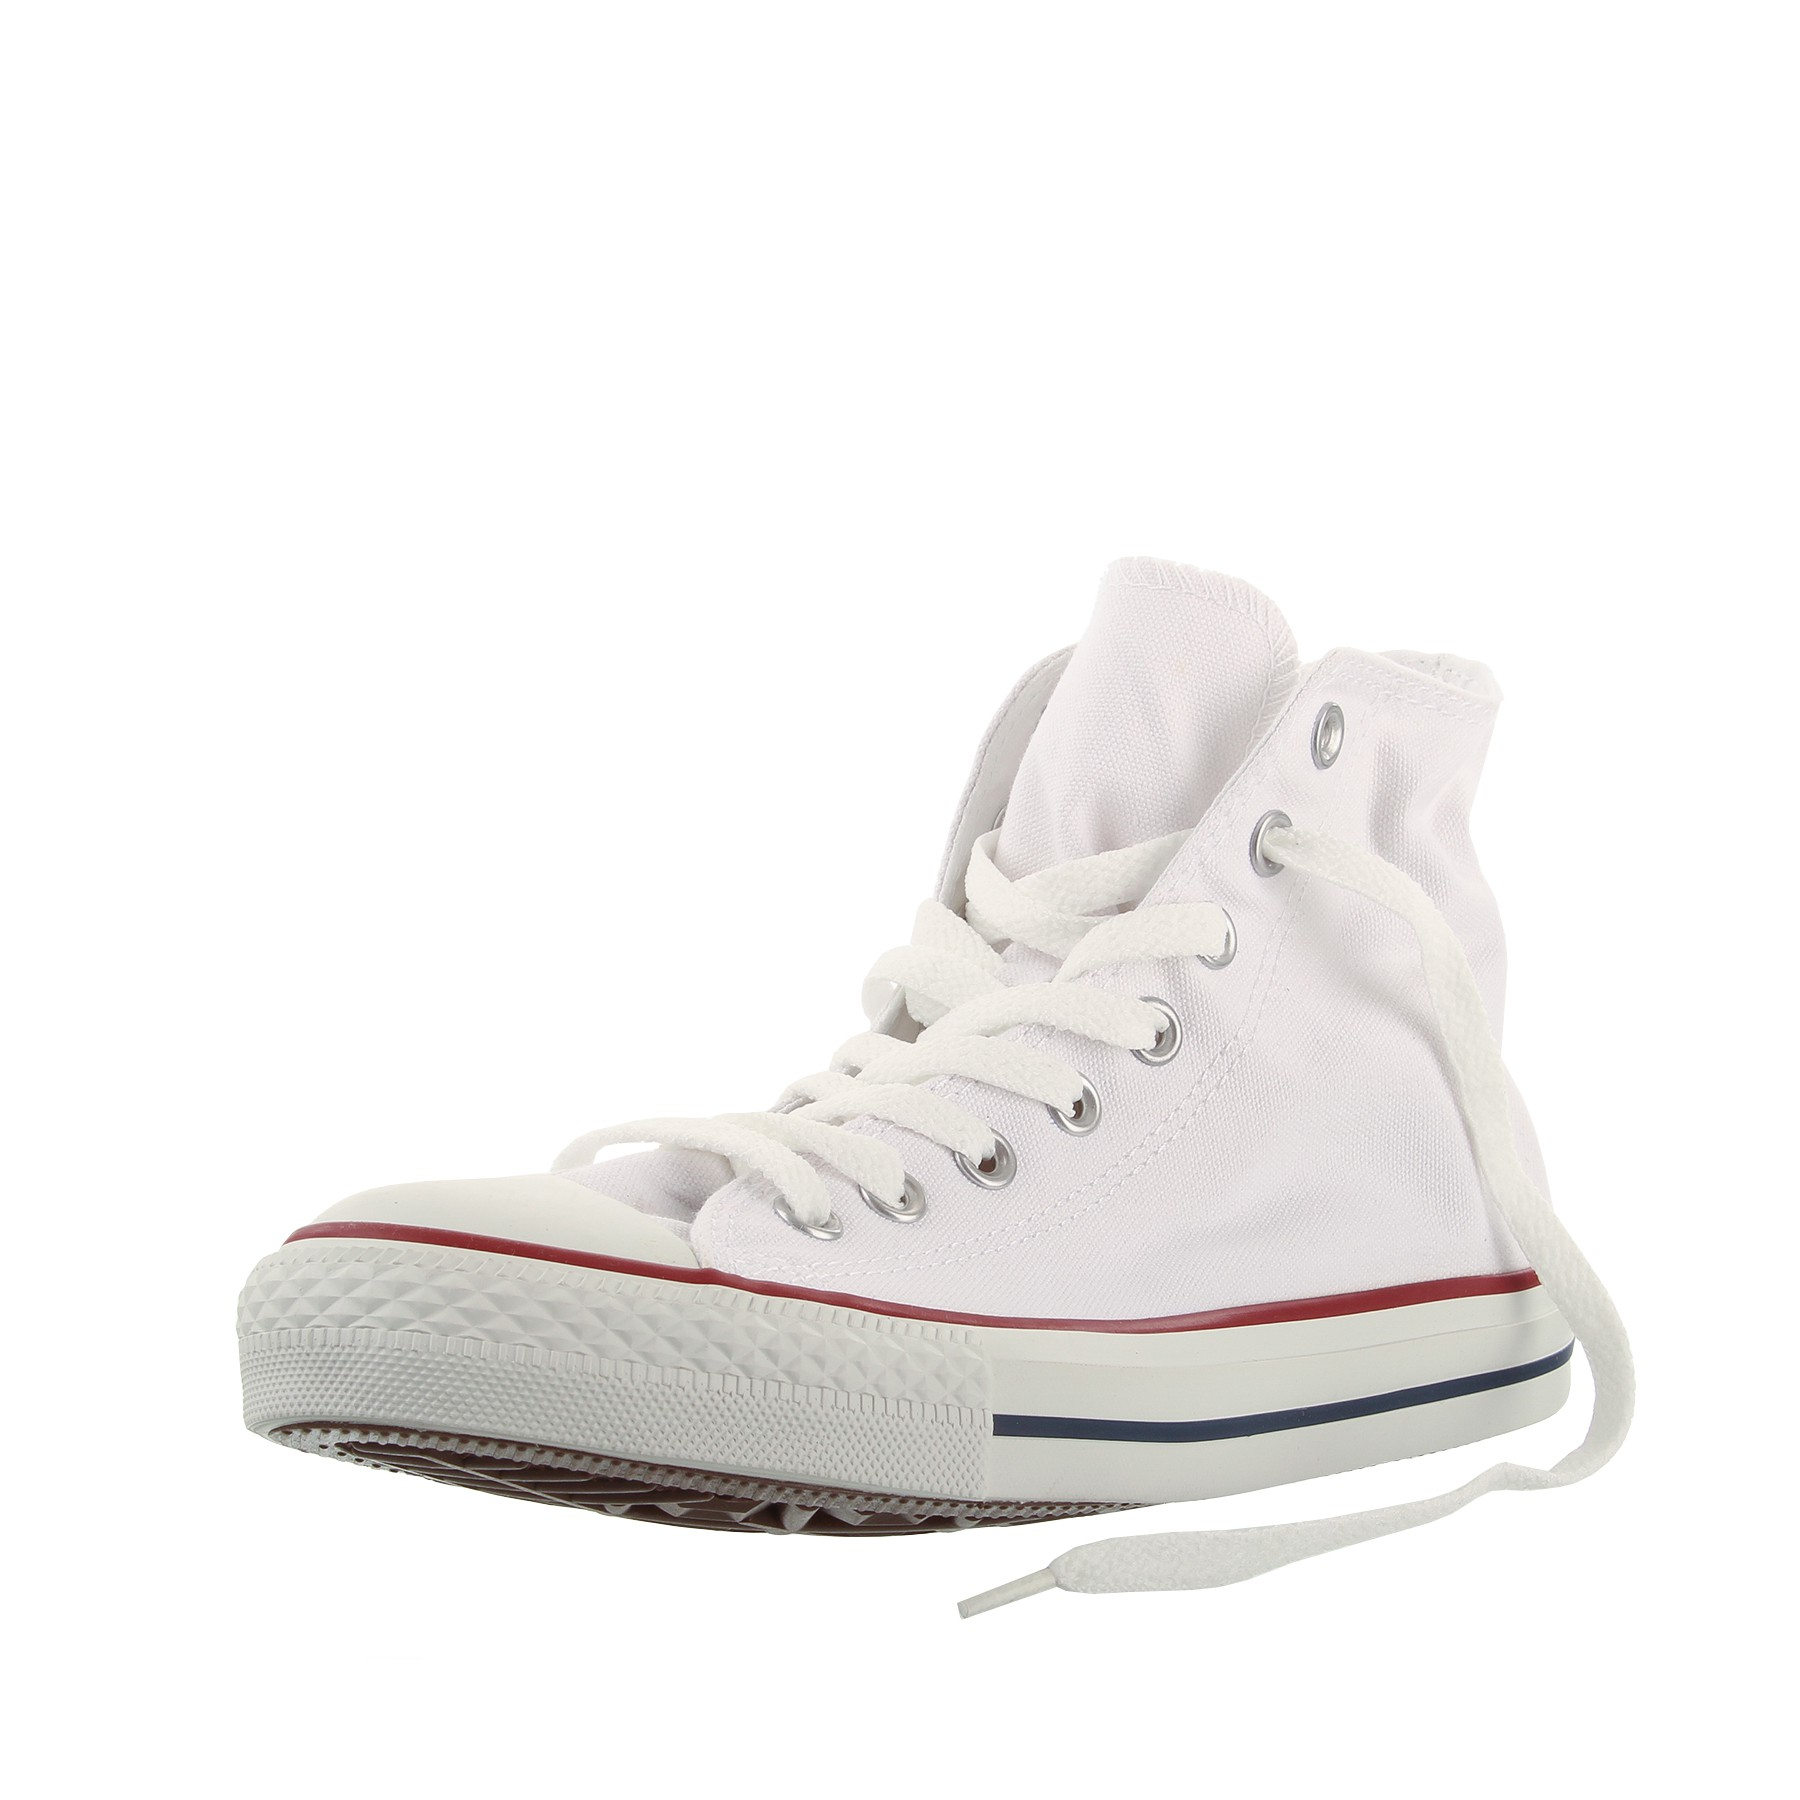 M7650 CT CHUCK TAYLOR AS CORE/OPTICAL WHITE Bild https://cdn03.plentymarkets.com/zsy4vjx32p87/item/images/4289/full/M7650-ama-01.JPG